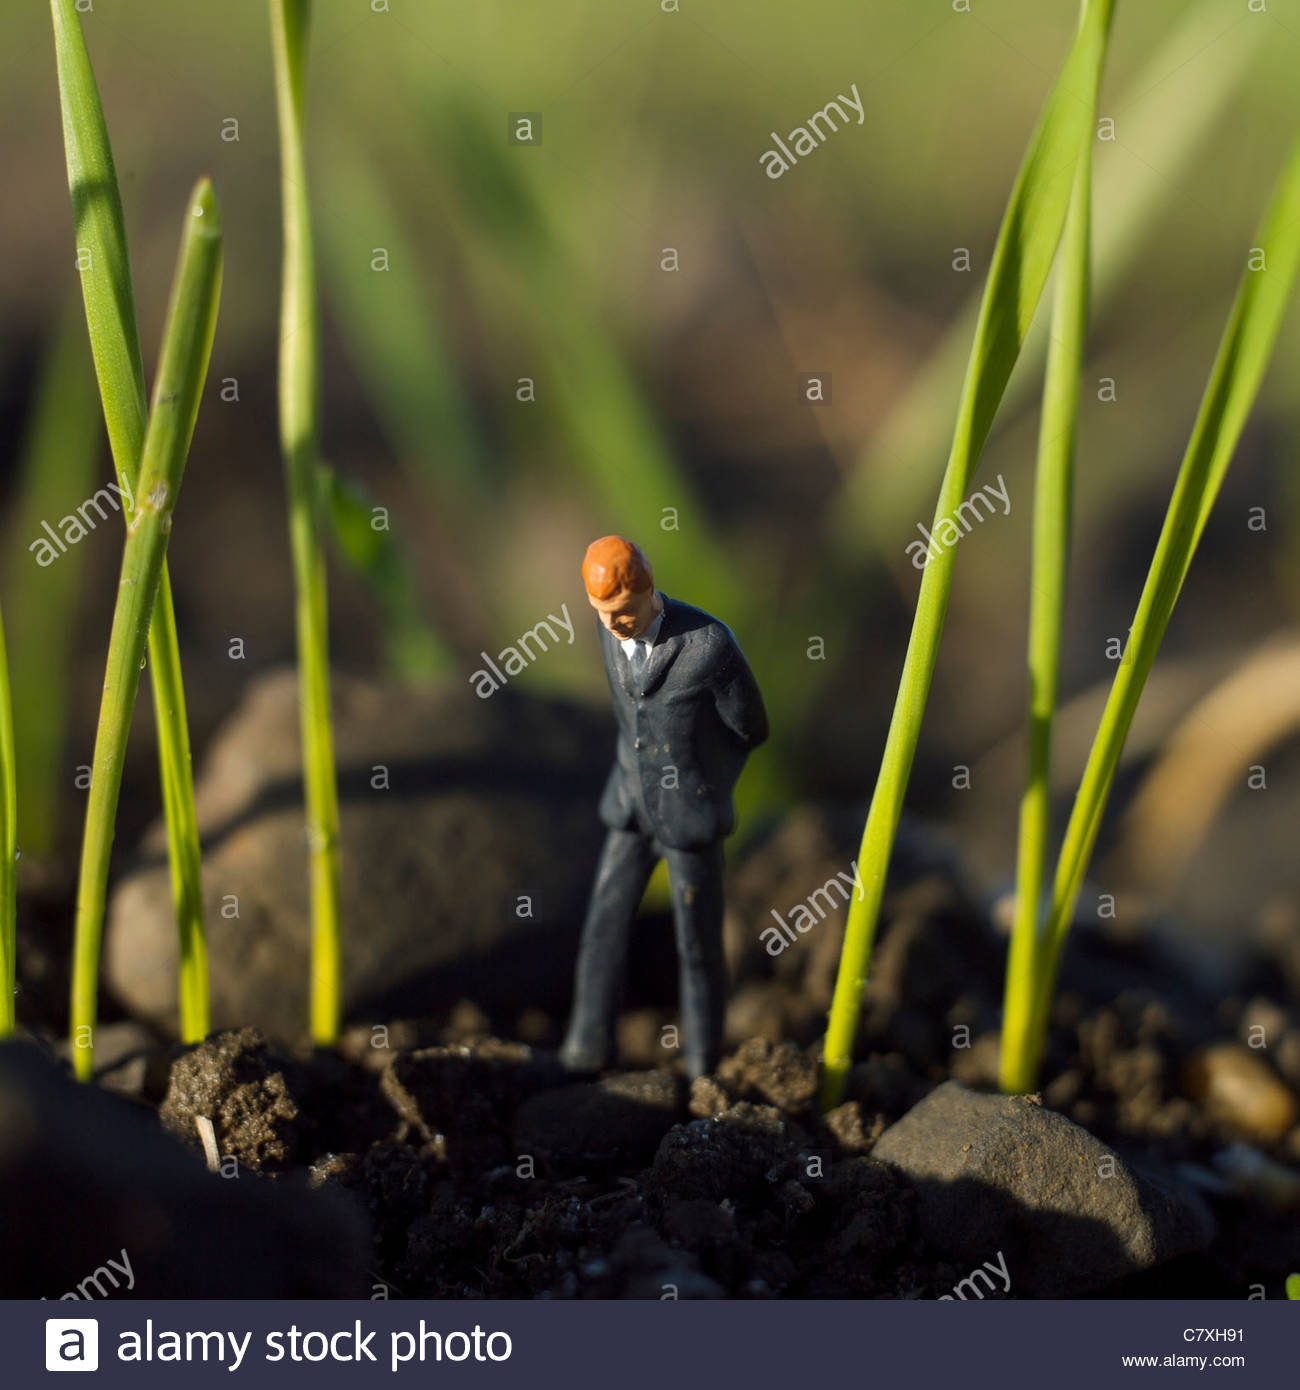 Solitary young male figure walking alone looking down - Stock Image